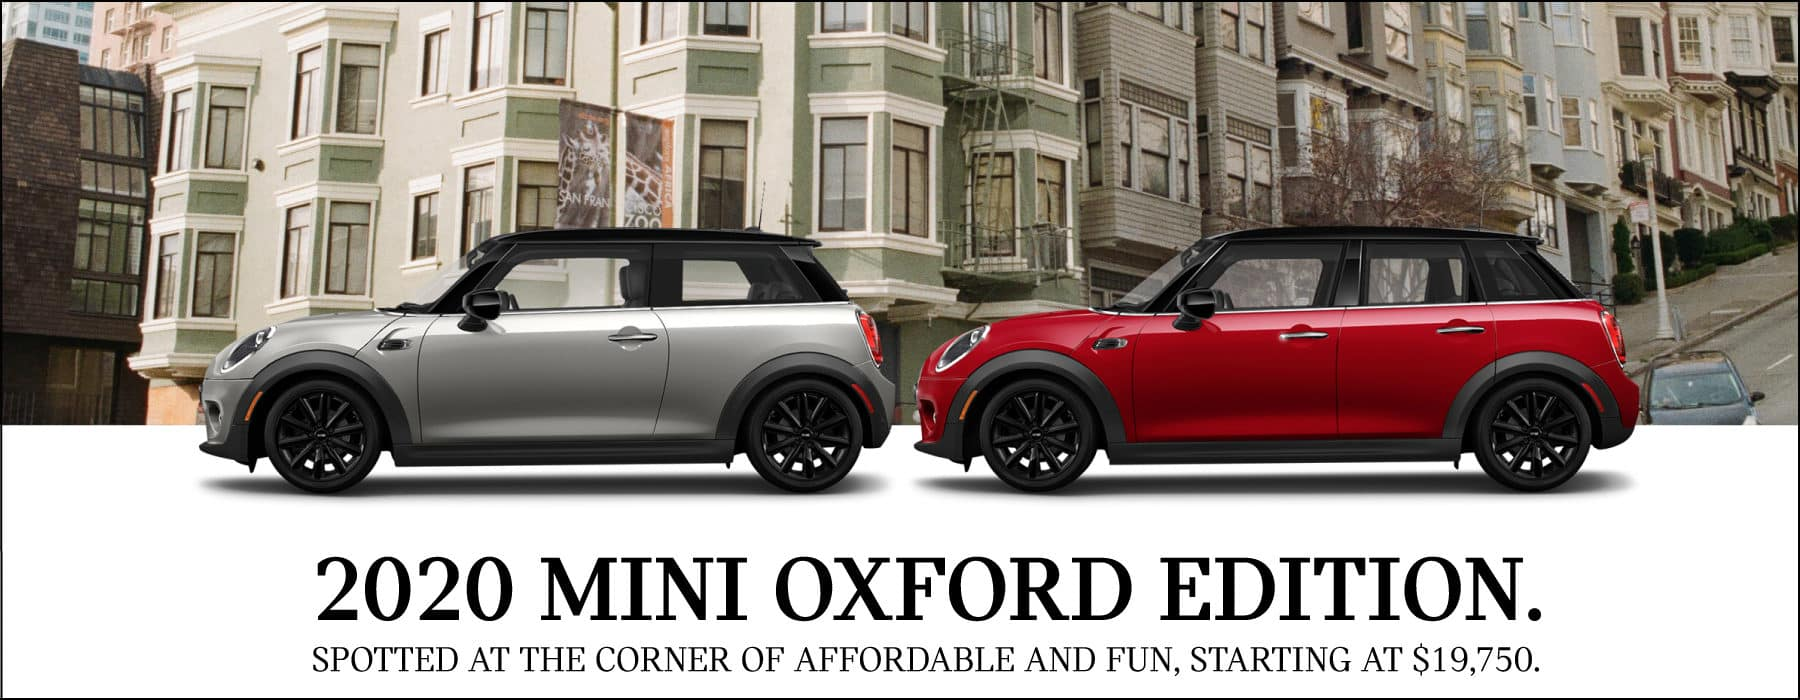 the 2020 mini oxford edition available for students.